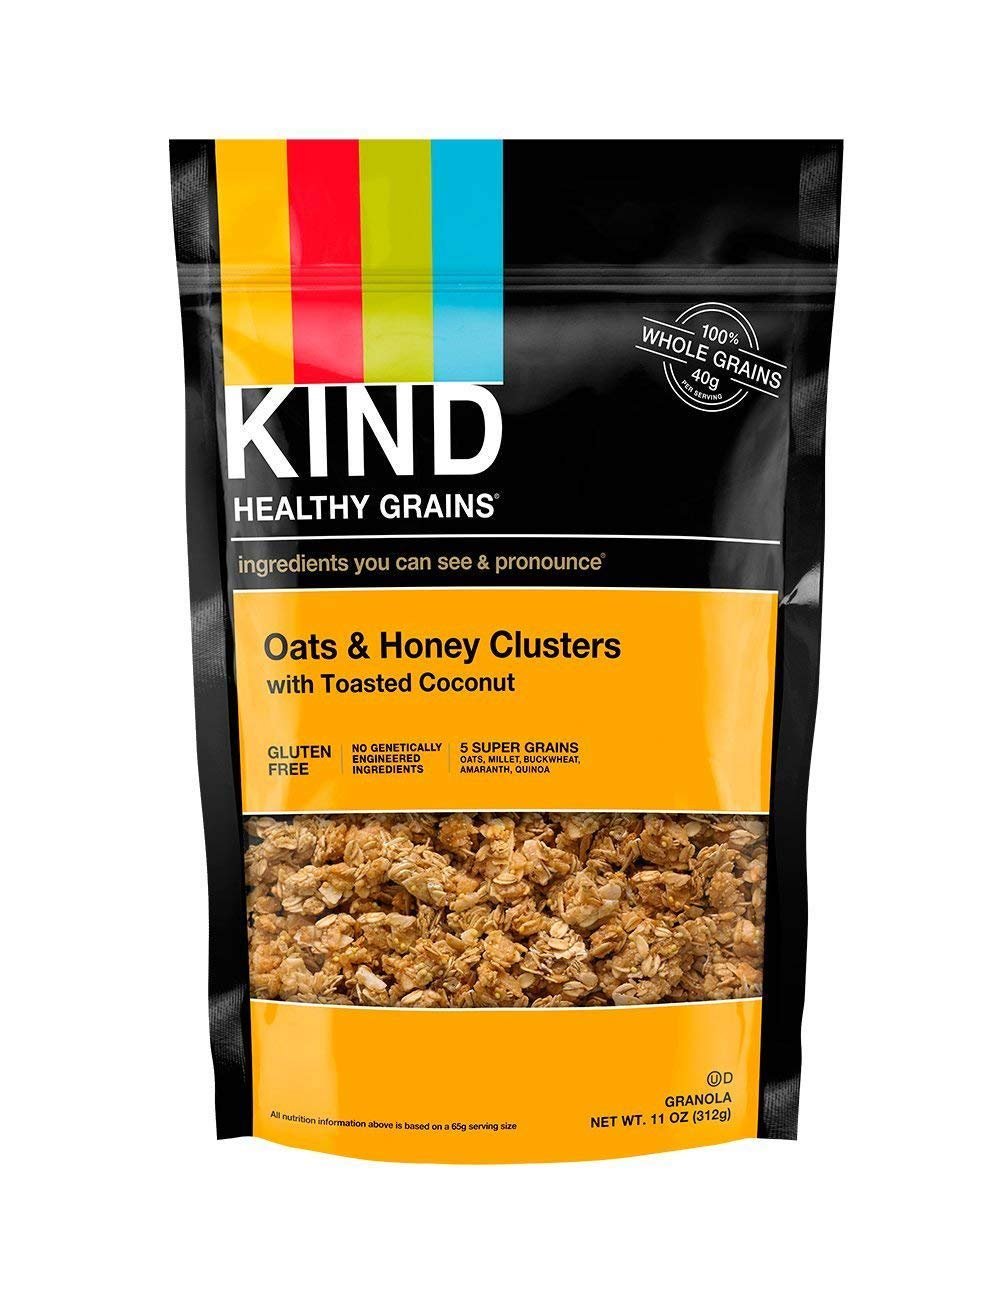 KIND Healthy Grains Clusters, Oats and Honey with Toasted Coconut Granola, Gluten Free, Non GMO, 11 Ounce Bags, 6 Pack